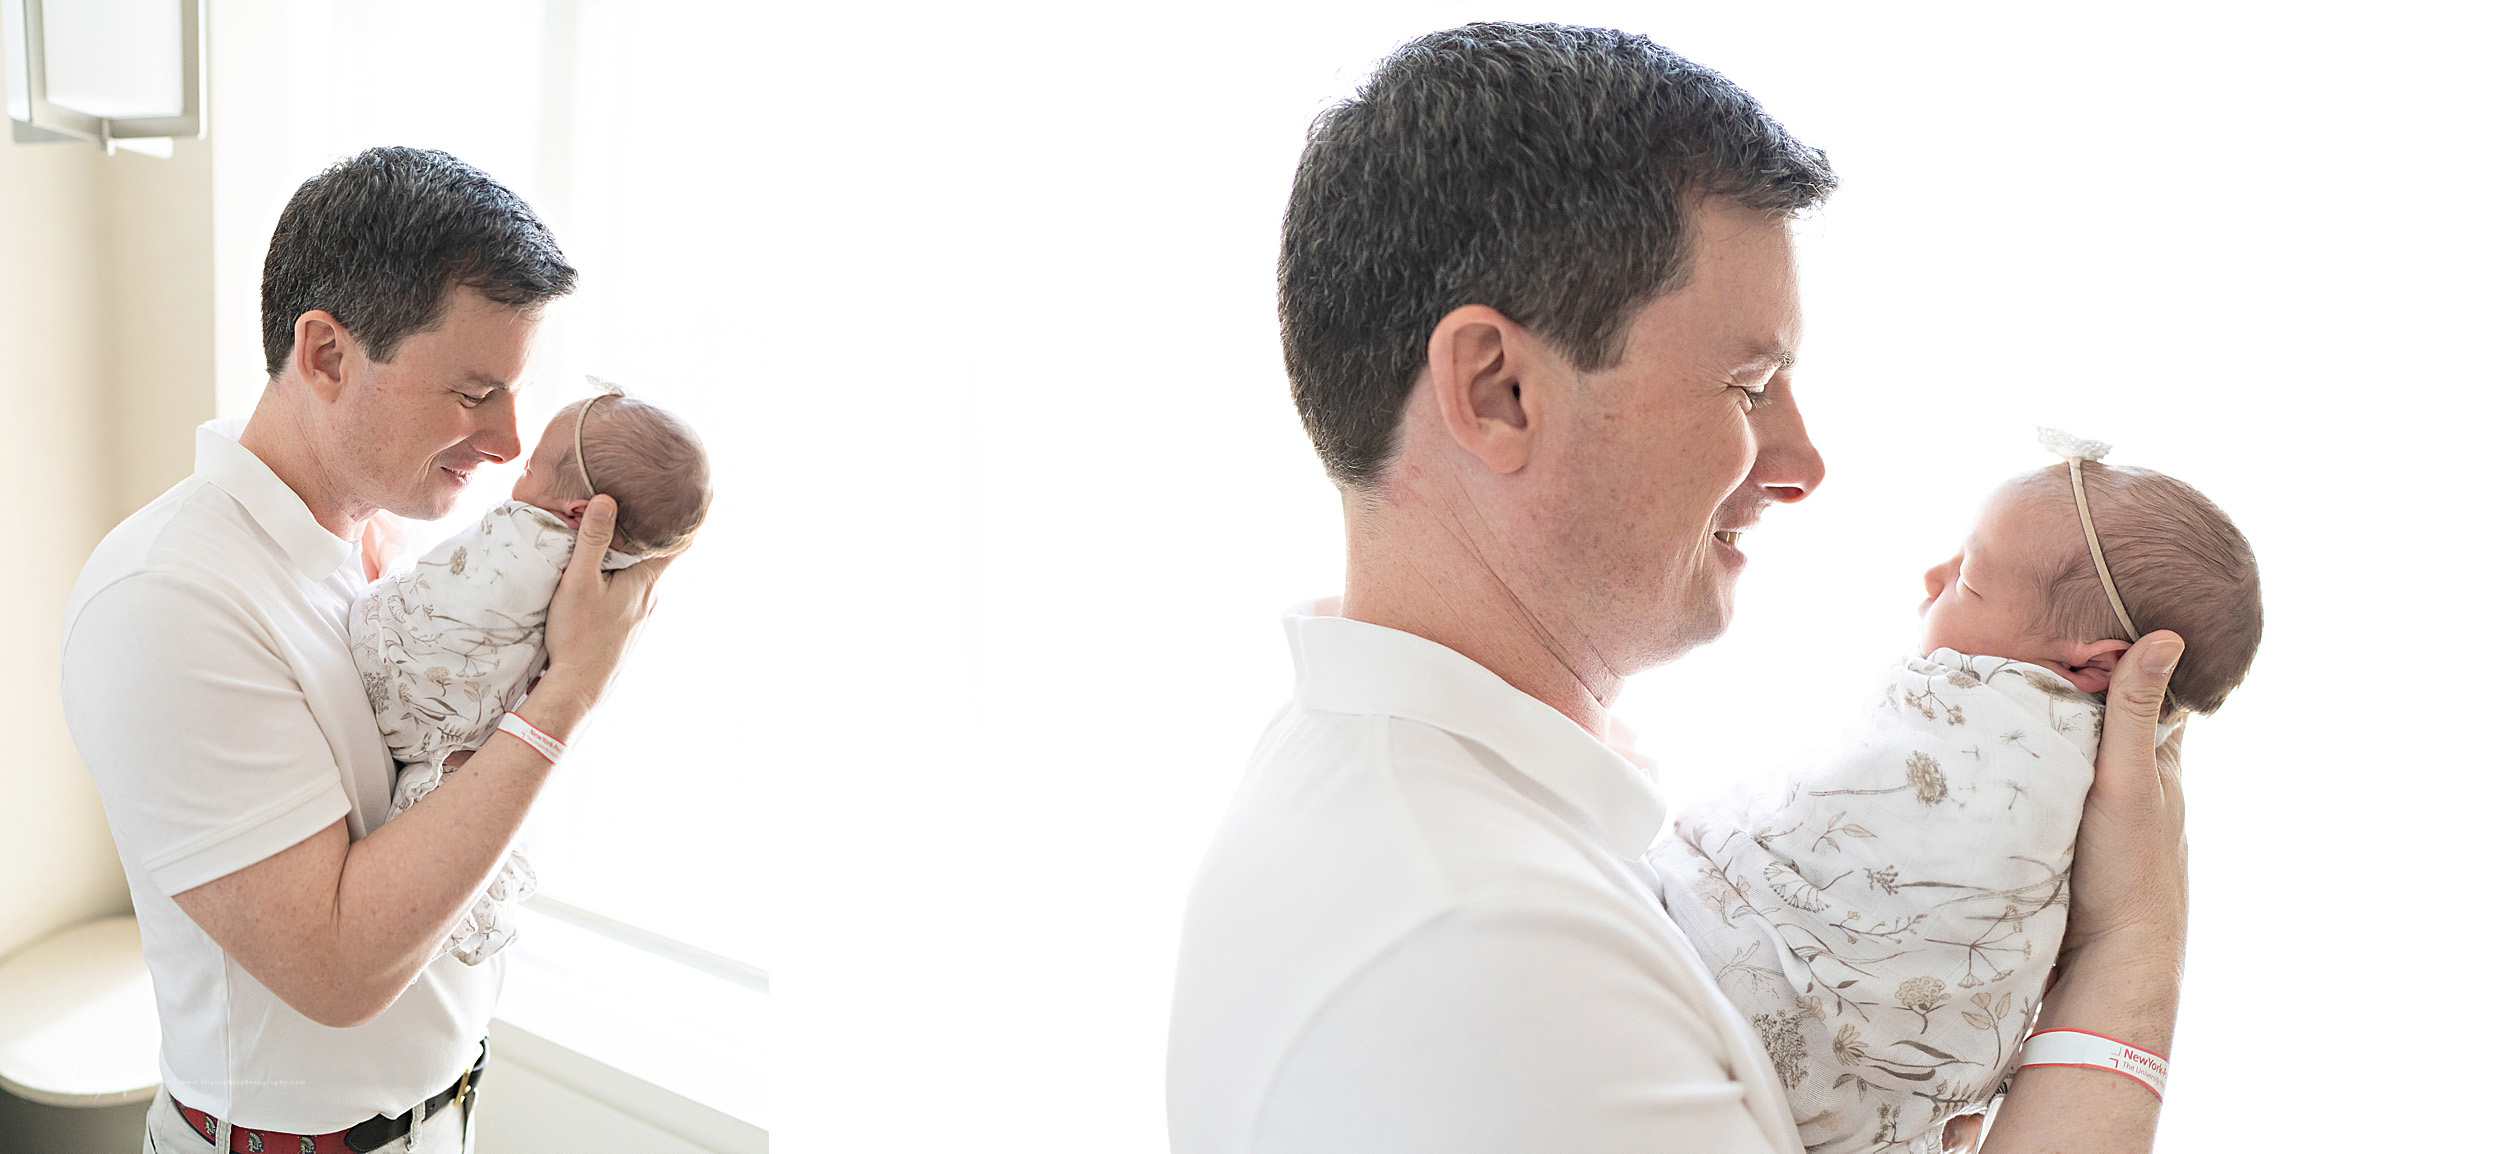 Split image photo of a father meeting and talking to his newborn daughter in Lenox Hill, New York in the hospital in natural light.